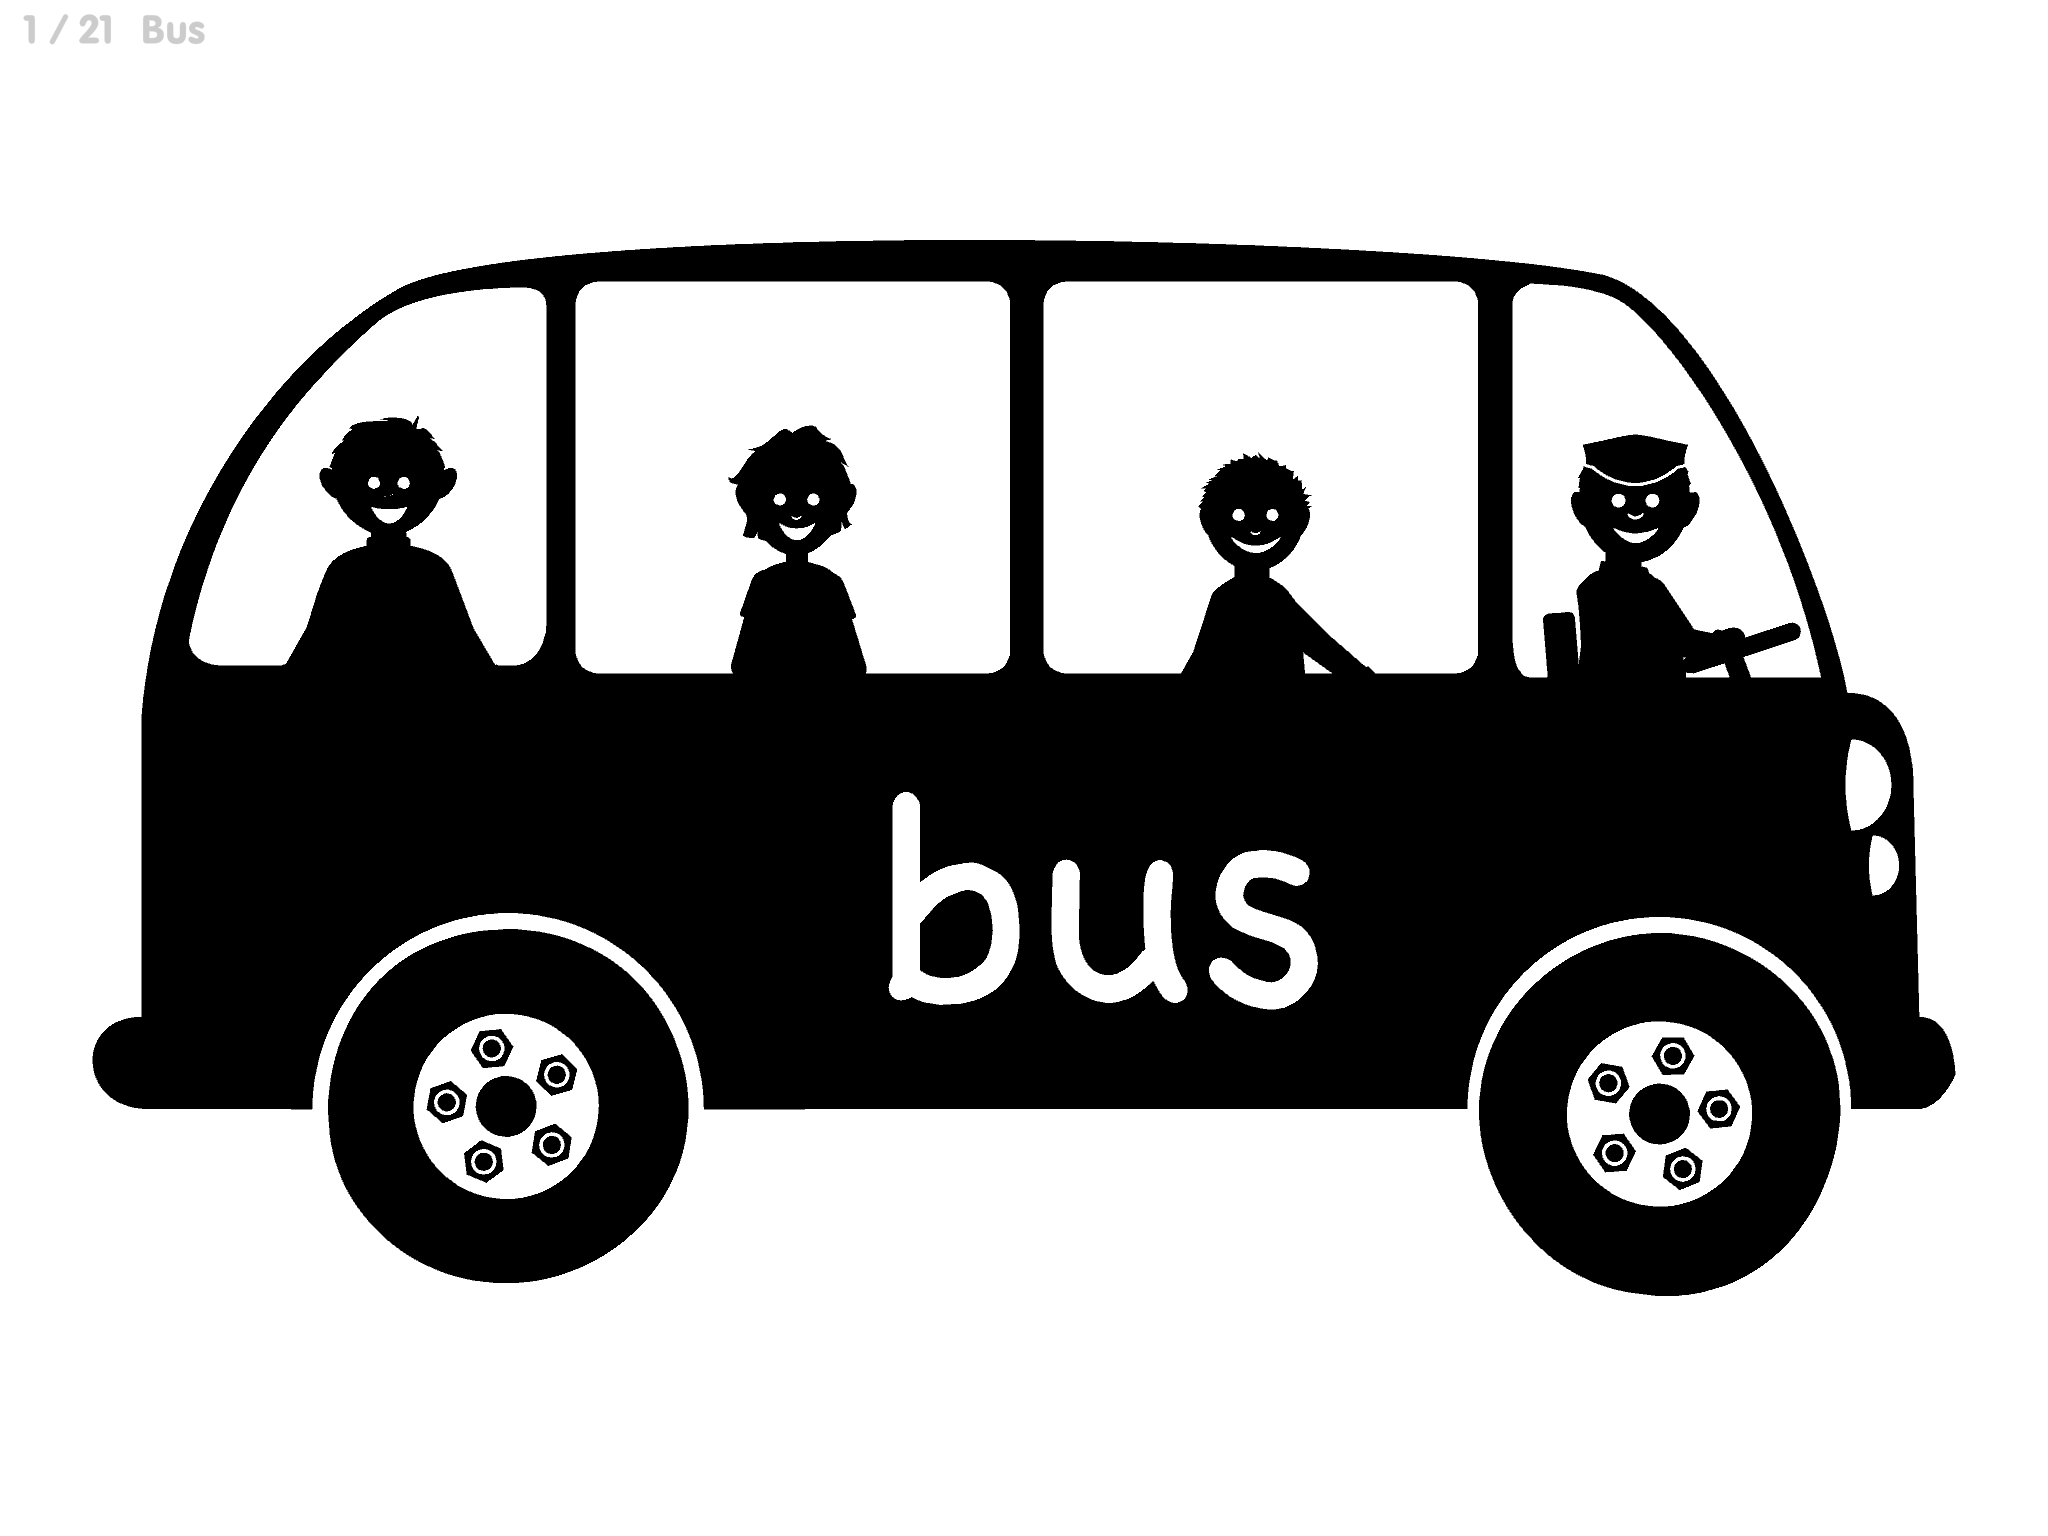 Silhoutte Bus: White background Black school bus with silhouette images of 4 people riding the bus with limited details.